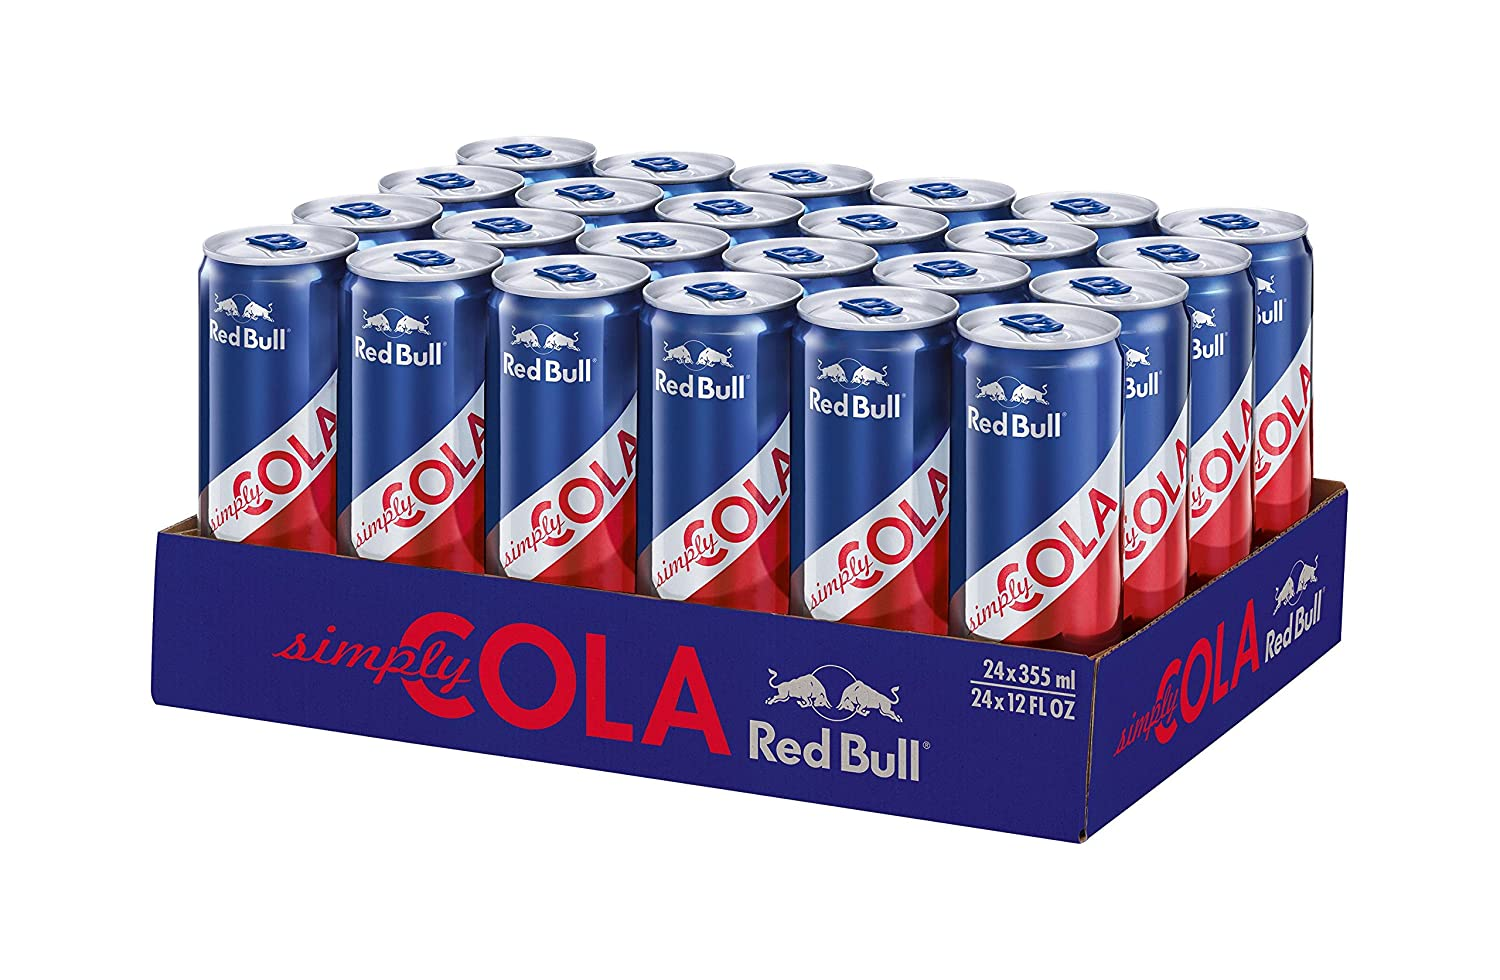 Red Bull Getränke Kühlschrank : Red bull simply cola 24er pack 24 x 355 ml : amazon.de